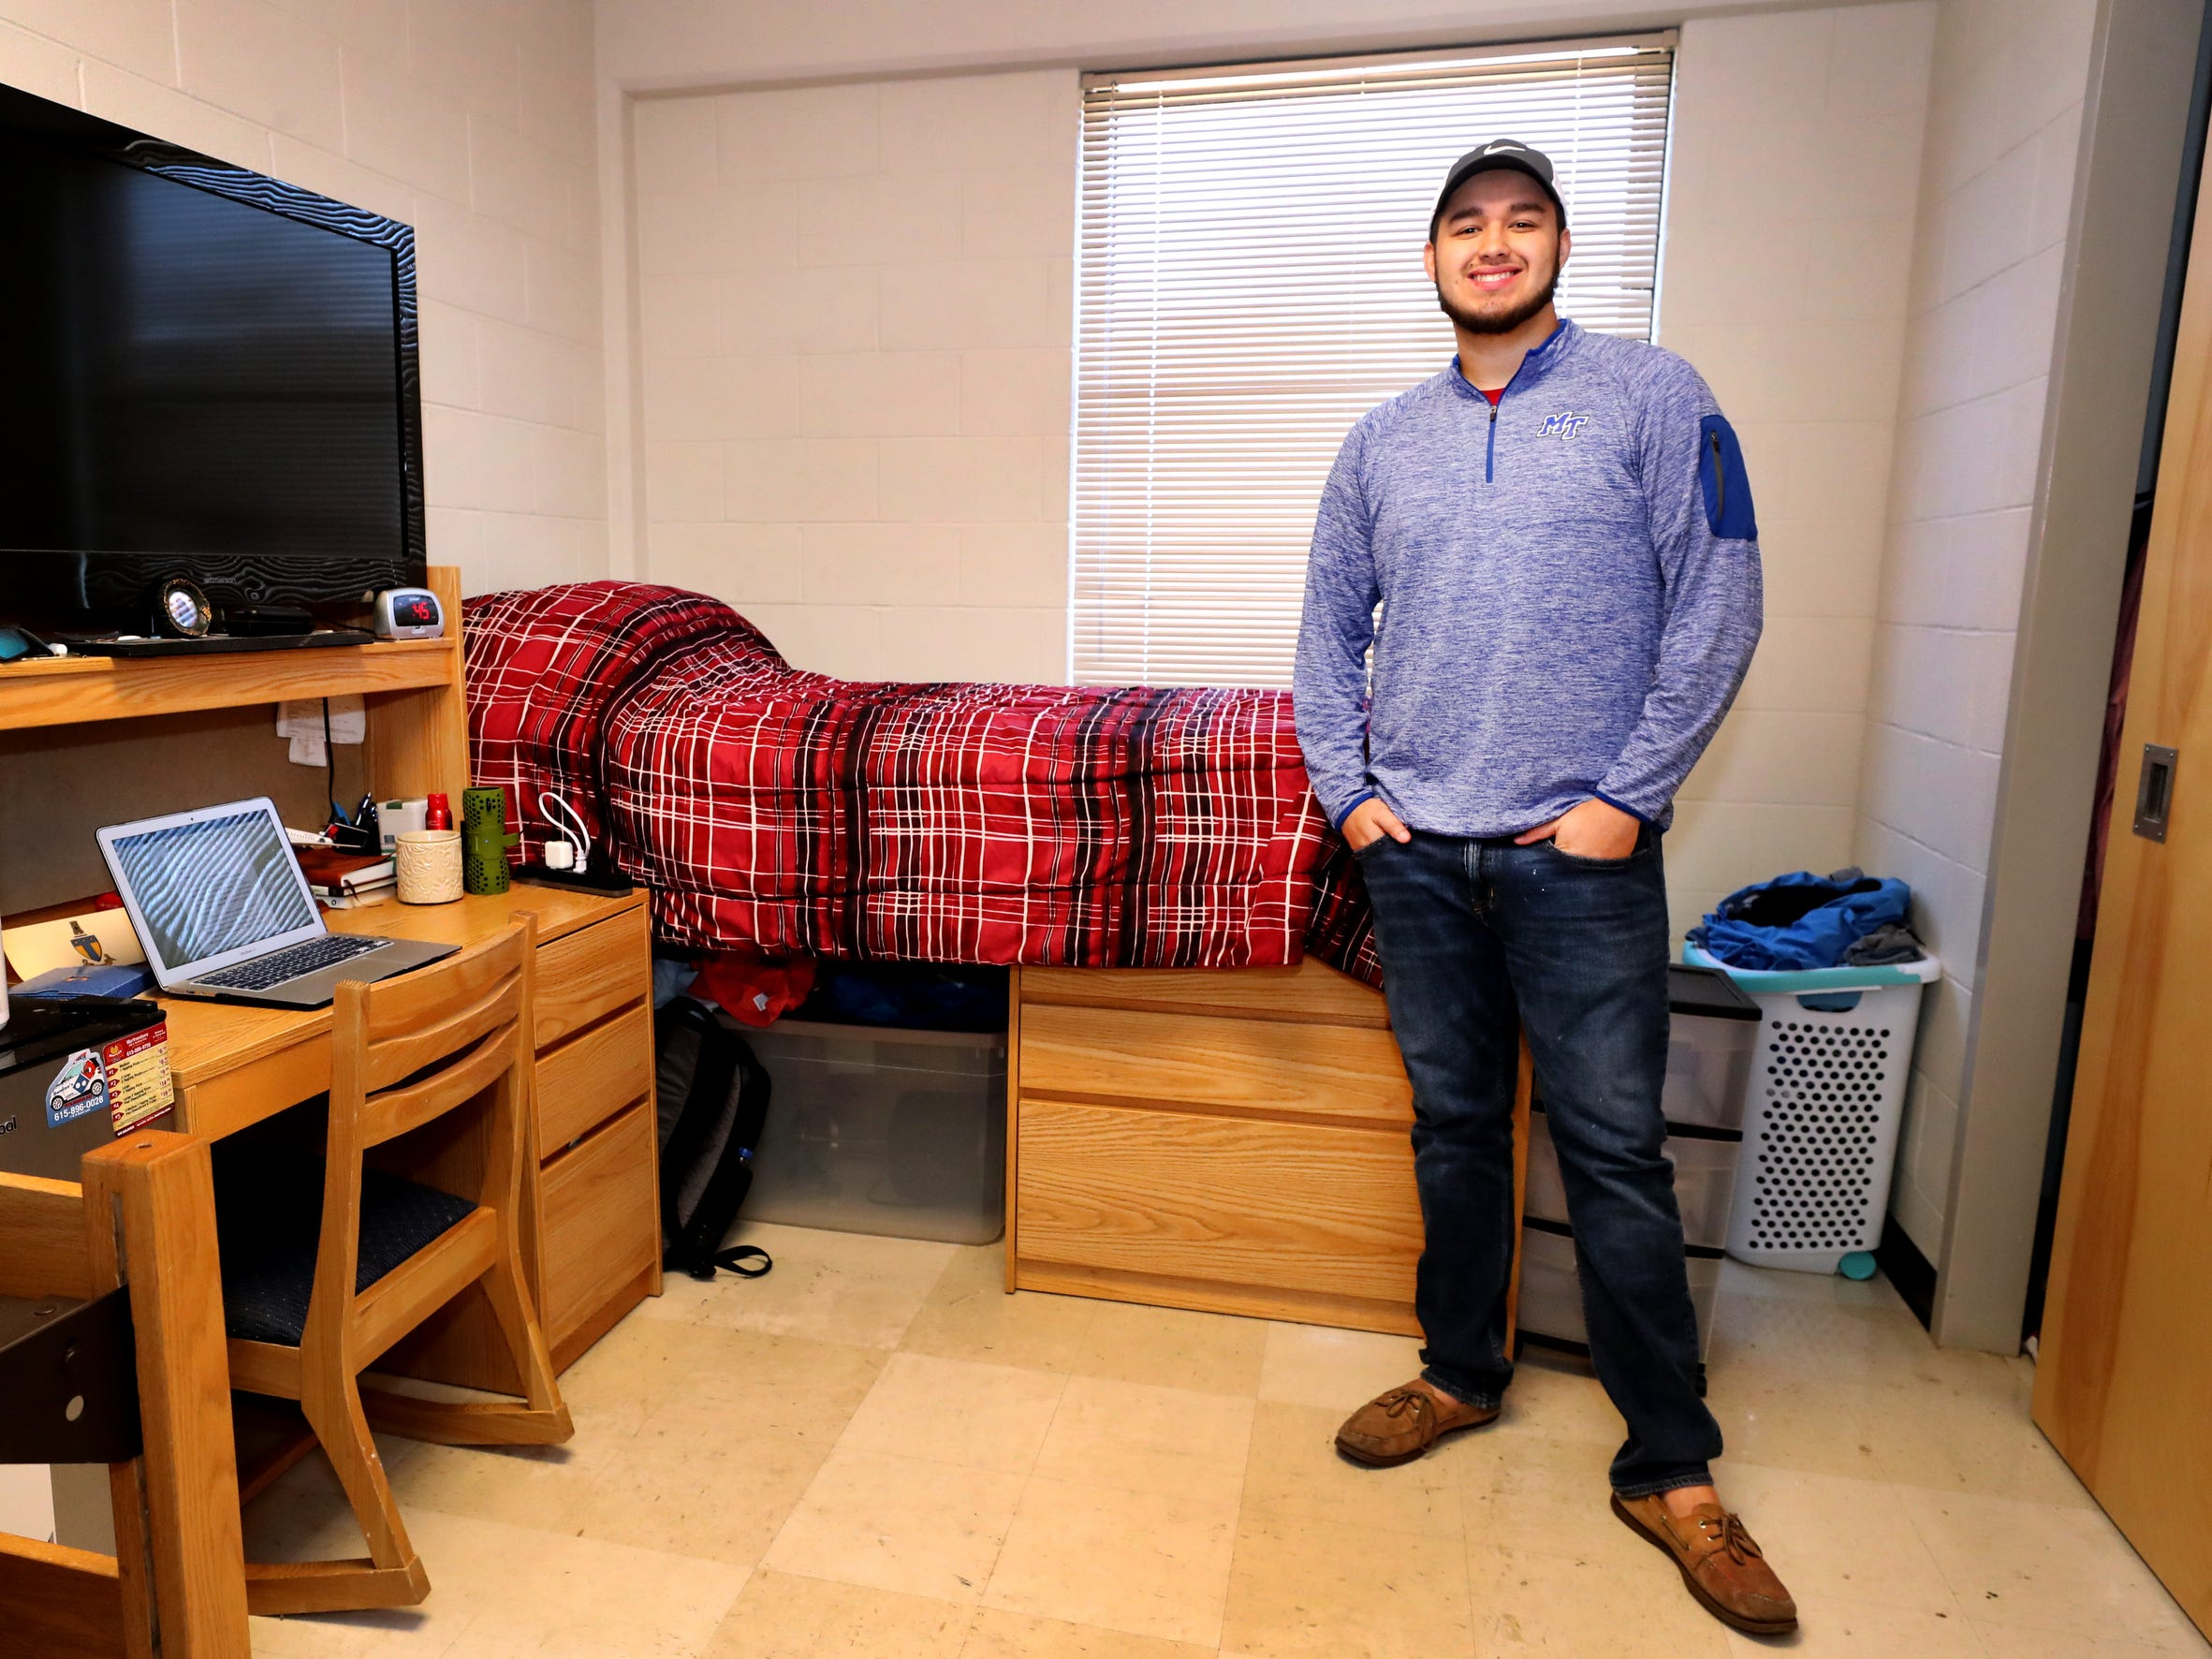 Isaac Plata, a freshman at MTSU, stands in his dorm room in Jim Cummings Hall at MTSU on Friday, March 22, 2019. Plata, who was once homeless, was able to participate in a program at MTSU that makes it easier for former homeless individuals to have a dorm room, while attending college.